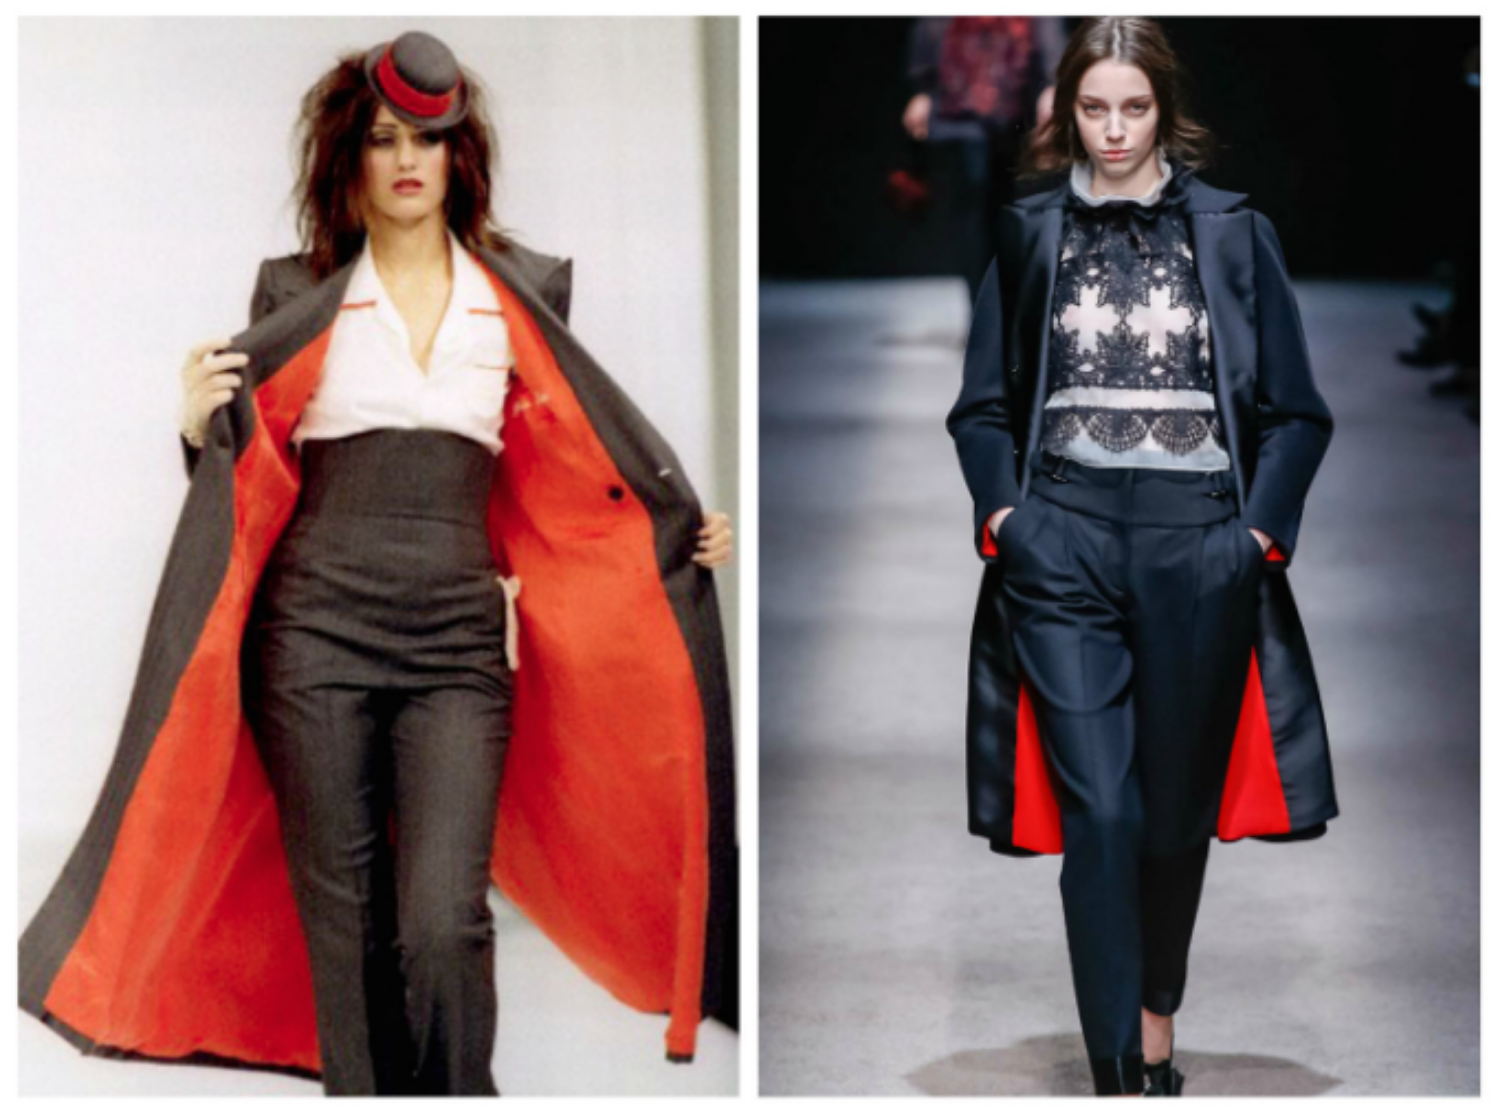 From left to right: Stella McCartney 1995, and the Alberta Ferretti collection at Milan Fashion Week, Fall 2015.